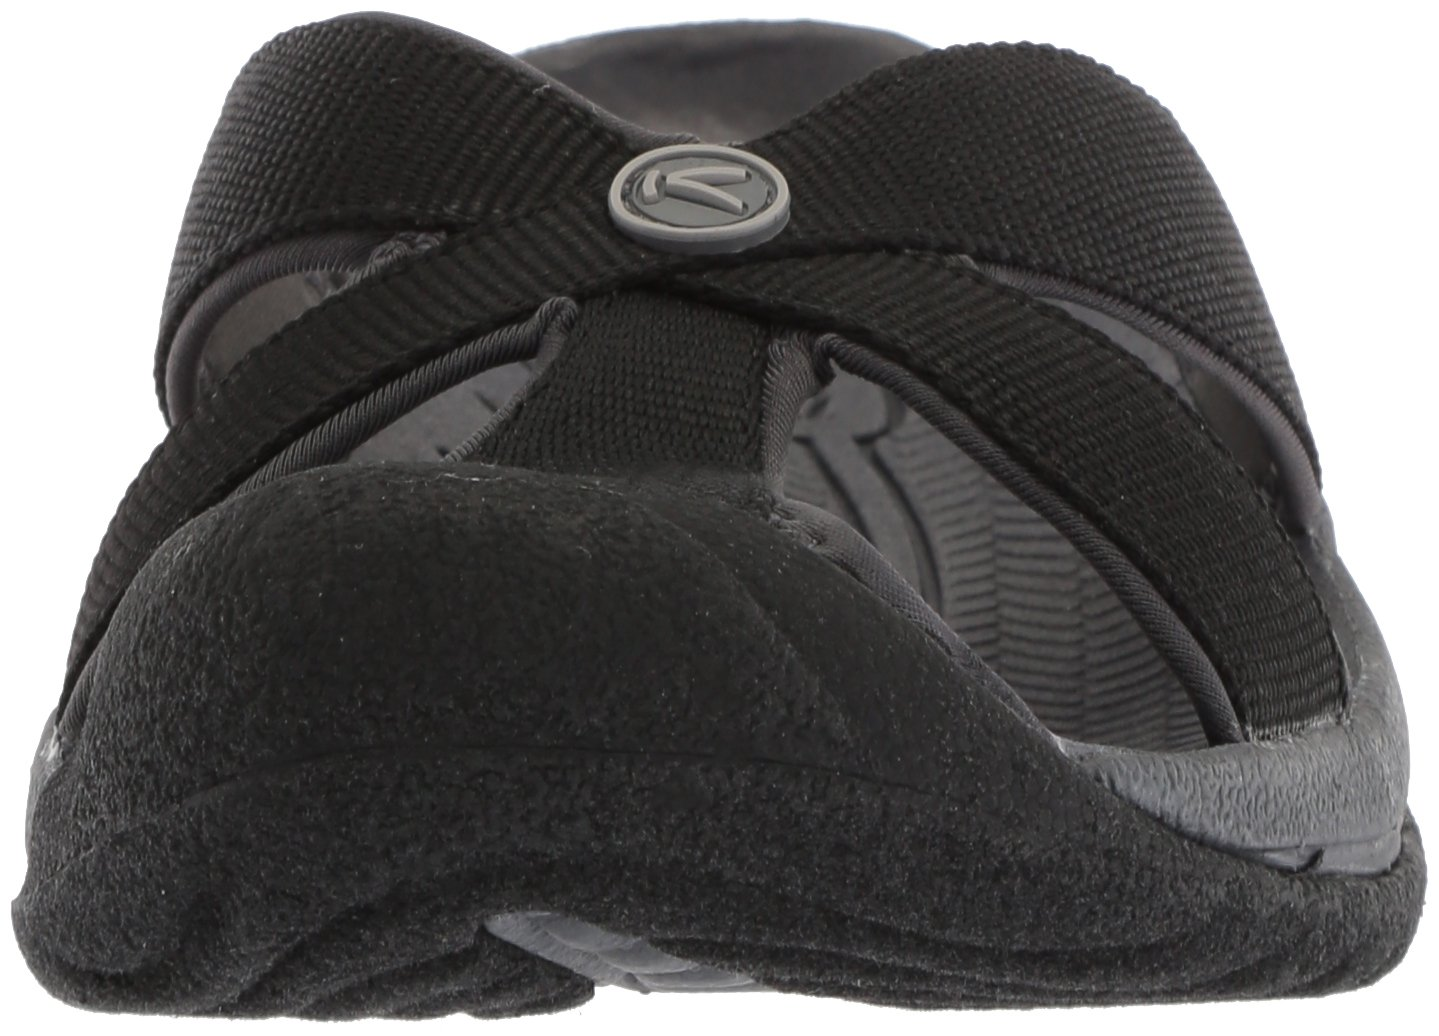 KEEN Women's B071XTSDK2 Bali Sandals B071XTSDK2 Women's 5 B(M) US|Black/Magnet 16be79